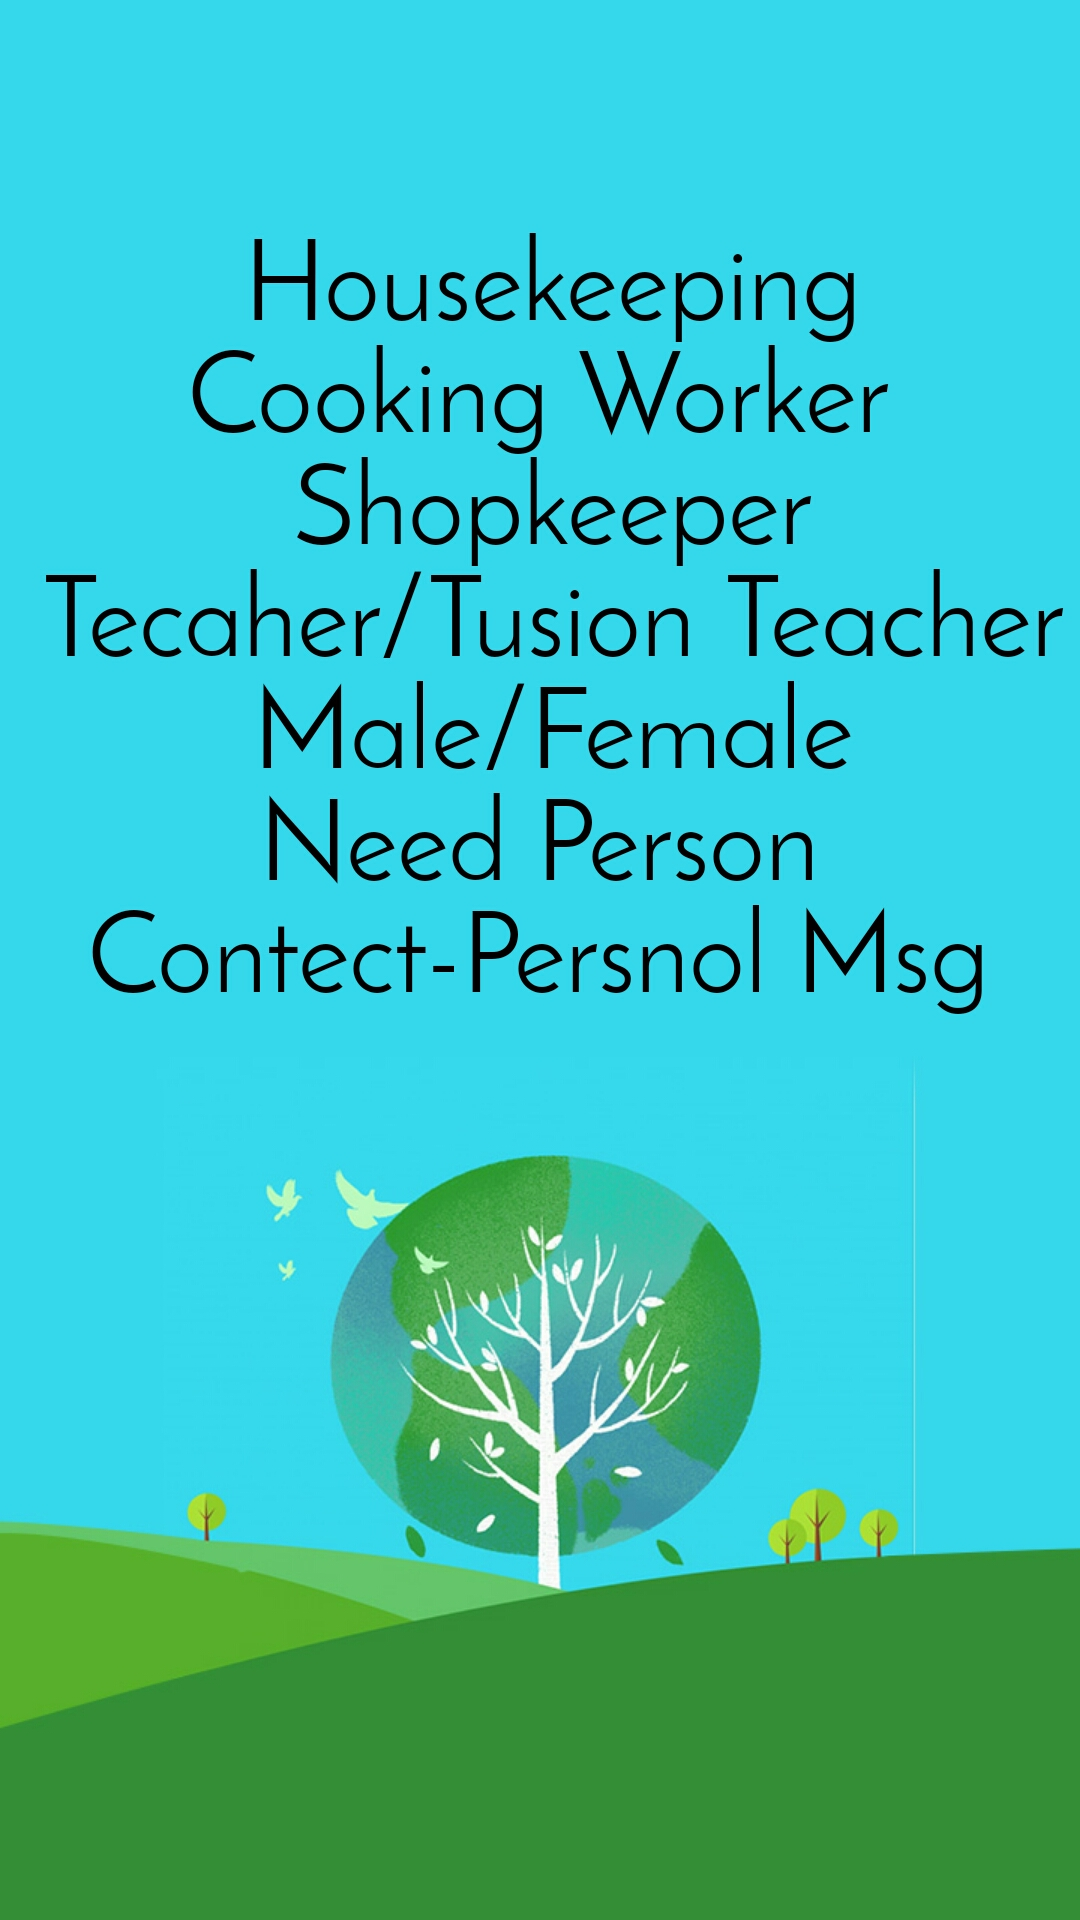 Housekeeping Cooking Worker  Shopkeeper Tecaher/Tusion Teacher Male/Female Need Person  Contect-Persnol Msg